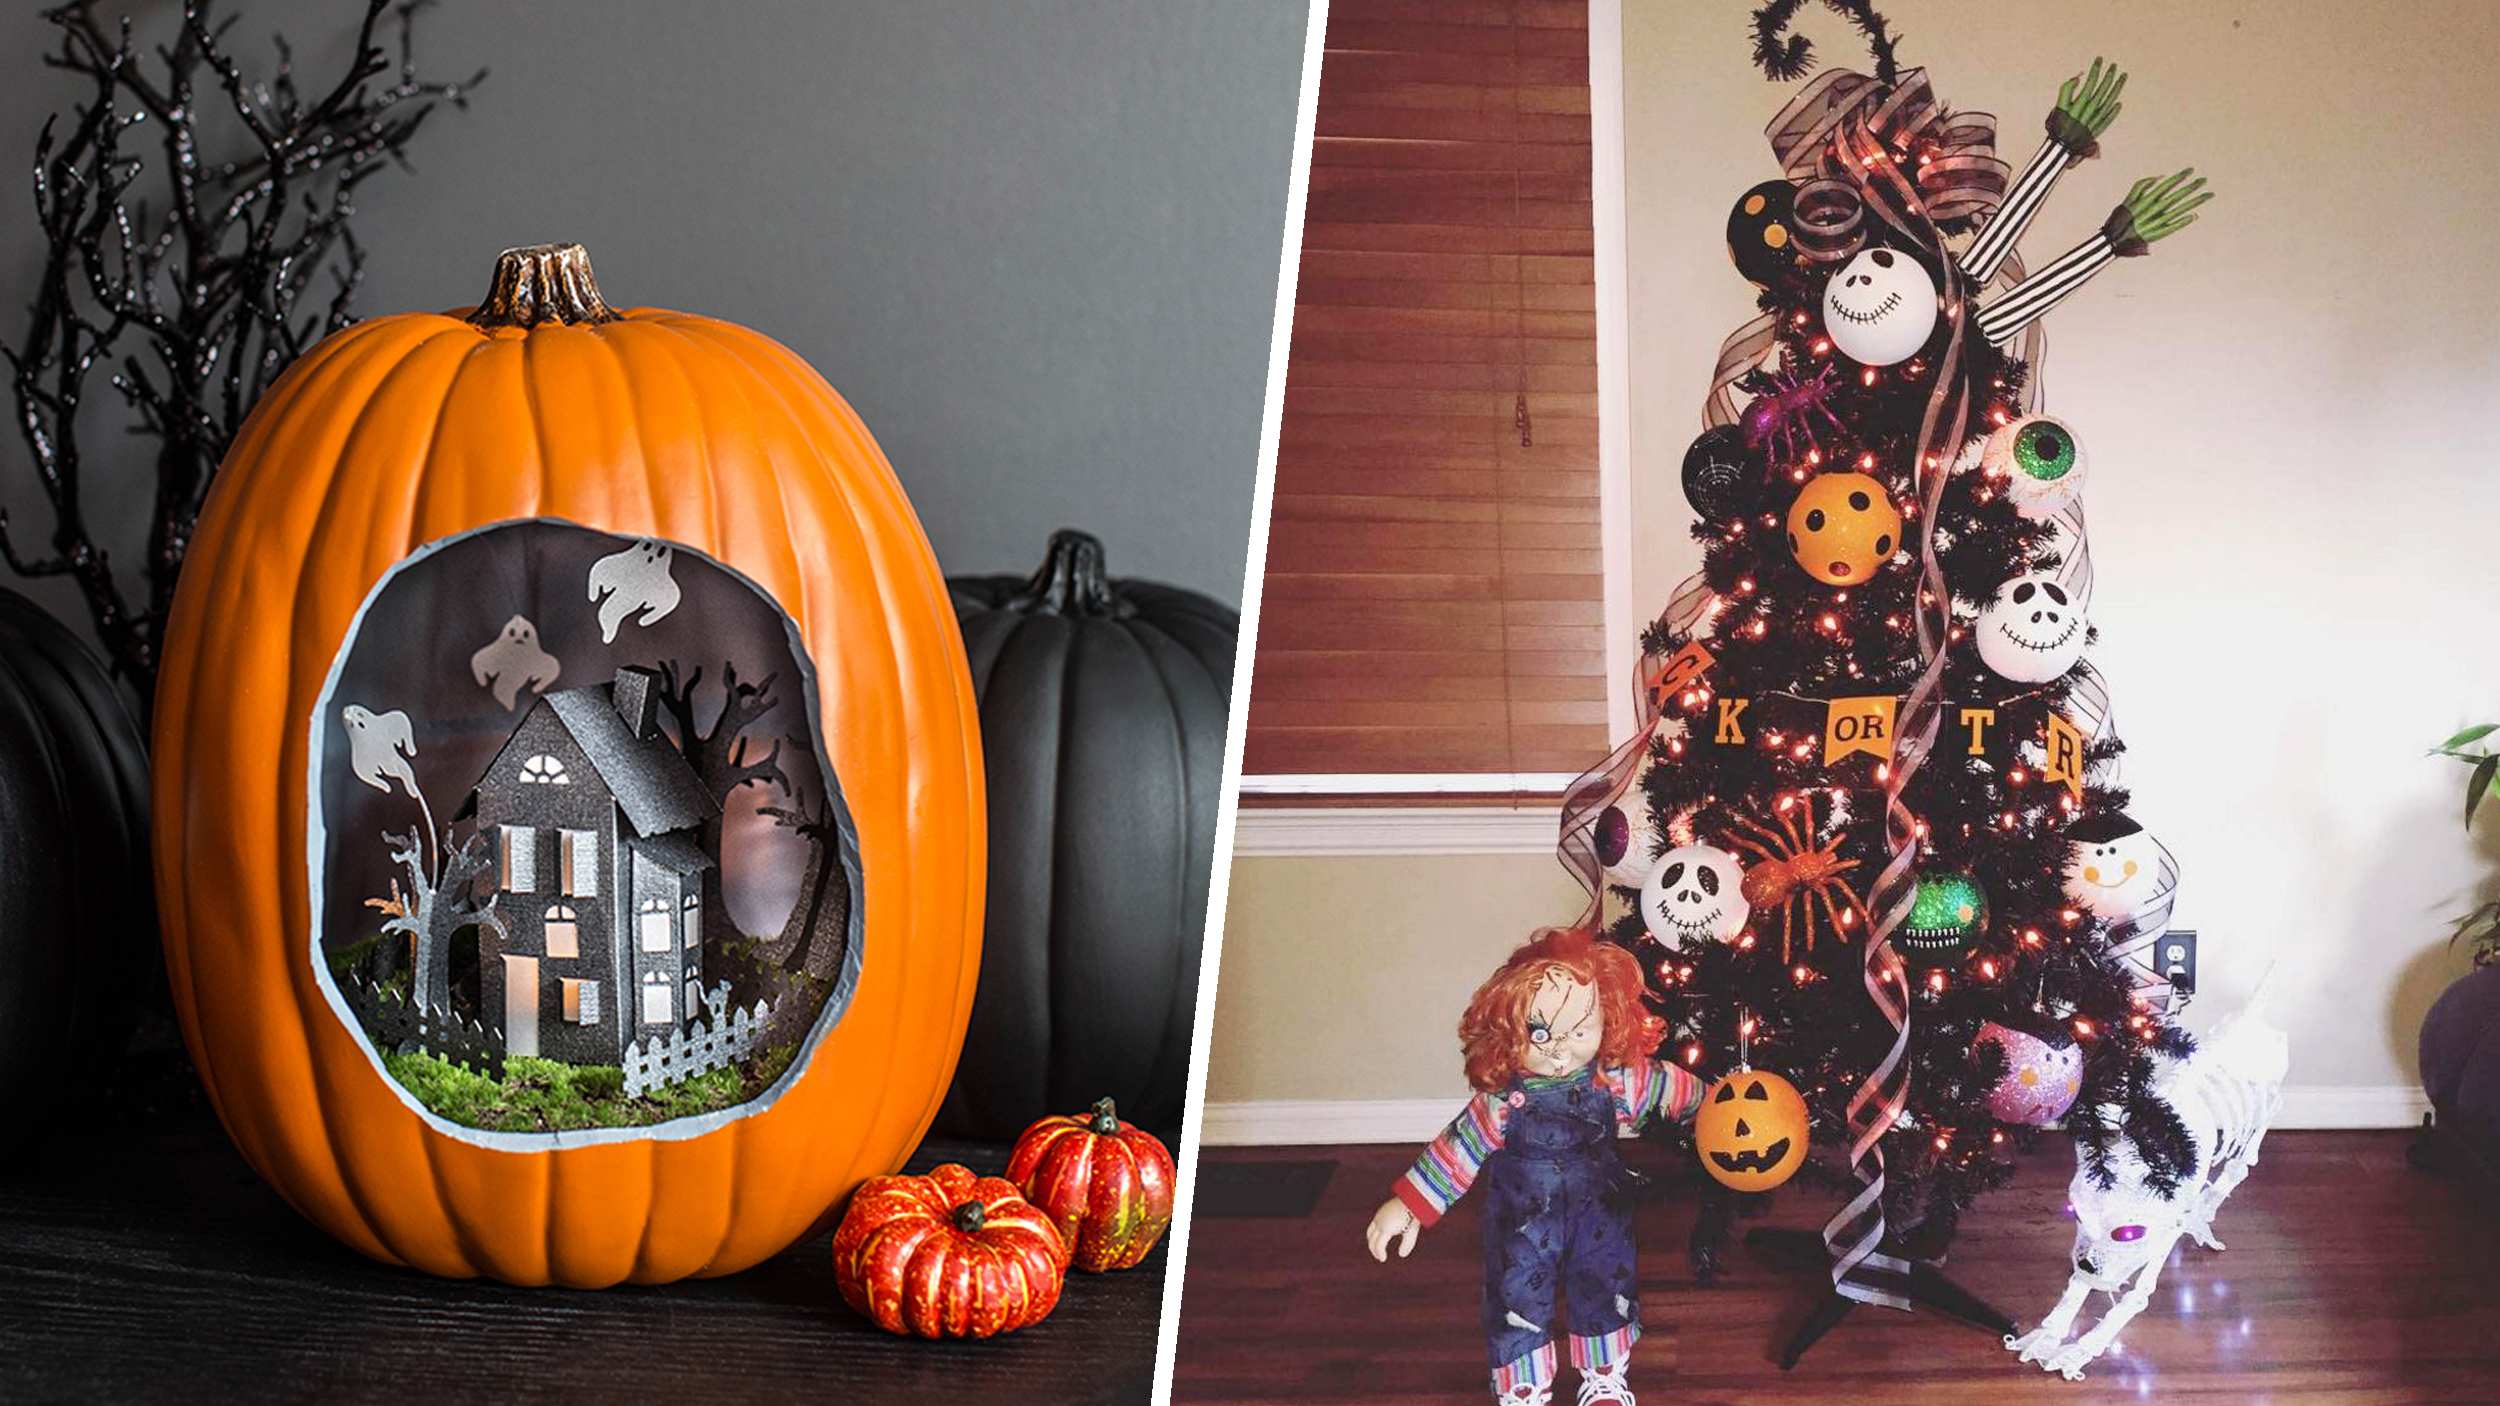 3 New Halloween Decorating Trends You Won't Believe